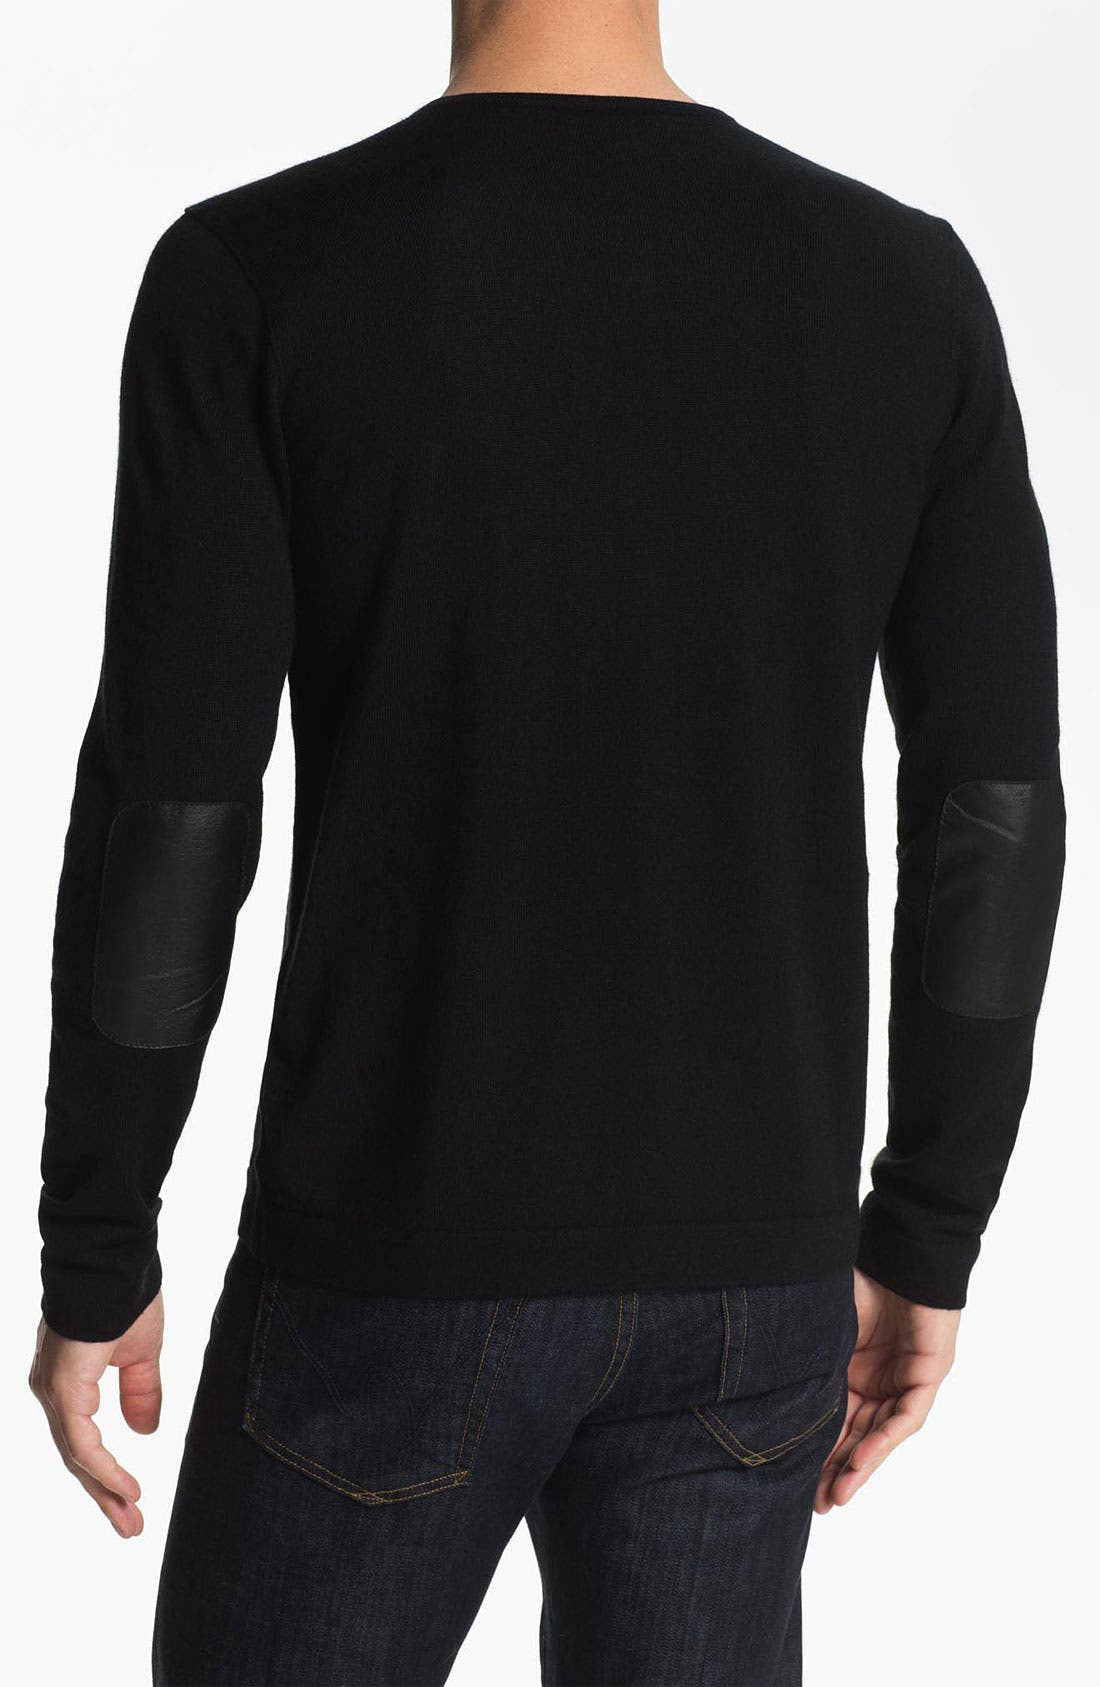 Alternate Image 2  - John Varvatos Star USA Trim Fit Crewneck Sweater